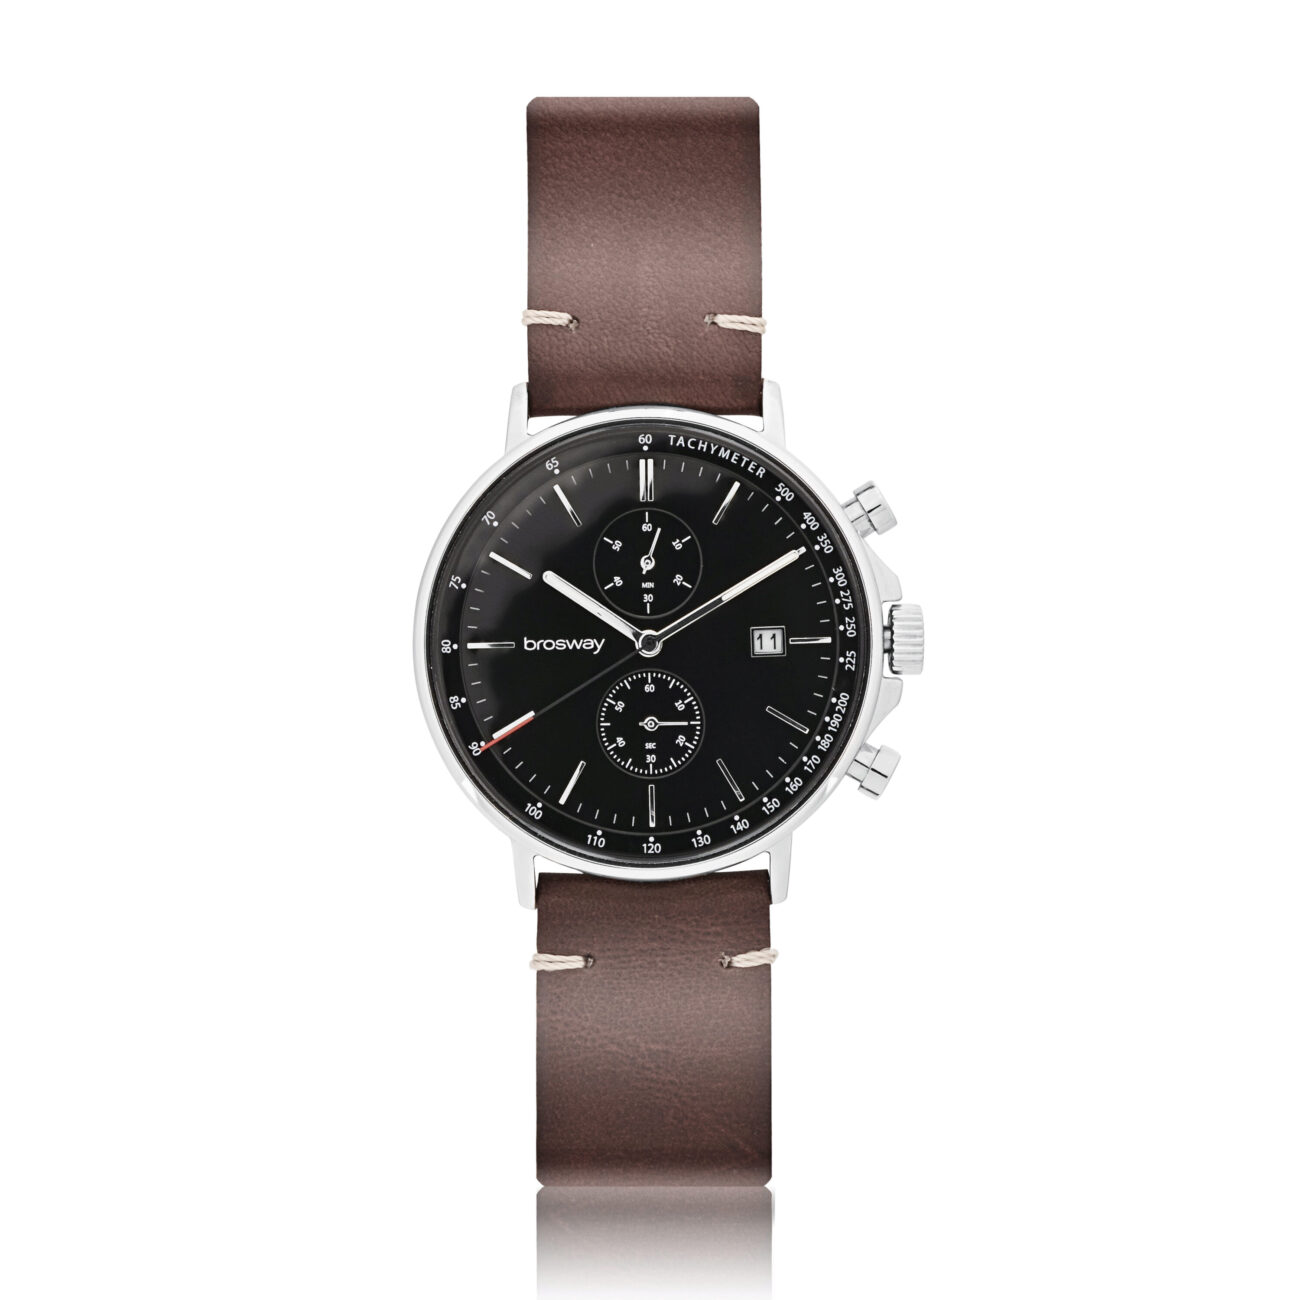 304 stainless steel chrono watch with black dial and brown leather wristband. Case: Ø 42 mm. 304 stainless steel, mineral glass, screw-down crown Function: hours, minutes, seconds, chrono, data Movement: chrono Miyota OS11 Dial: black Water resistant: 3 atmospheres Wristband: brown leather and 304 stainless steel buckle